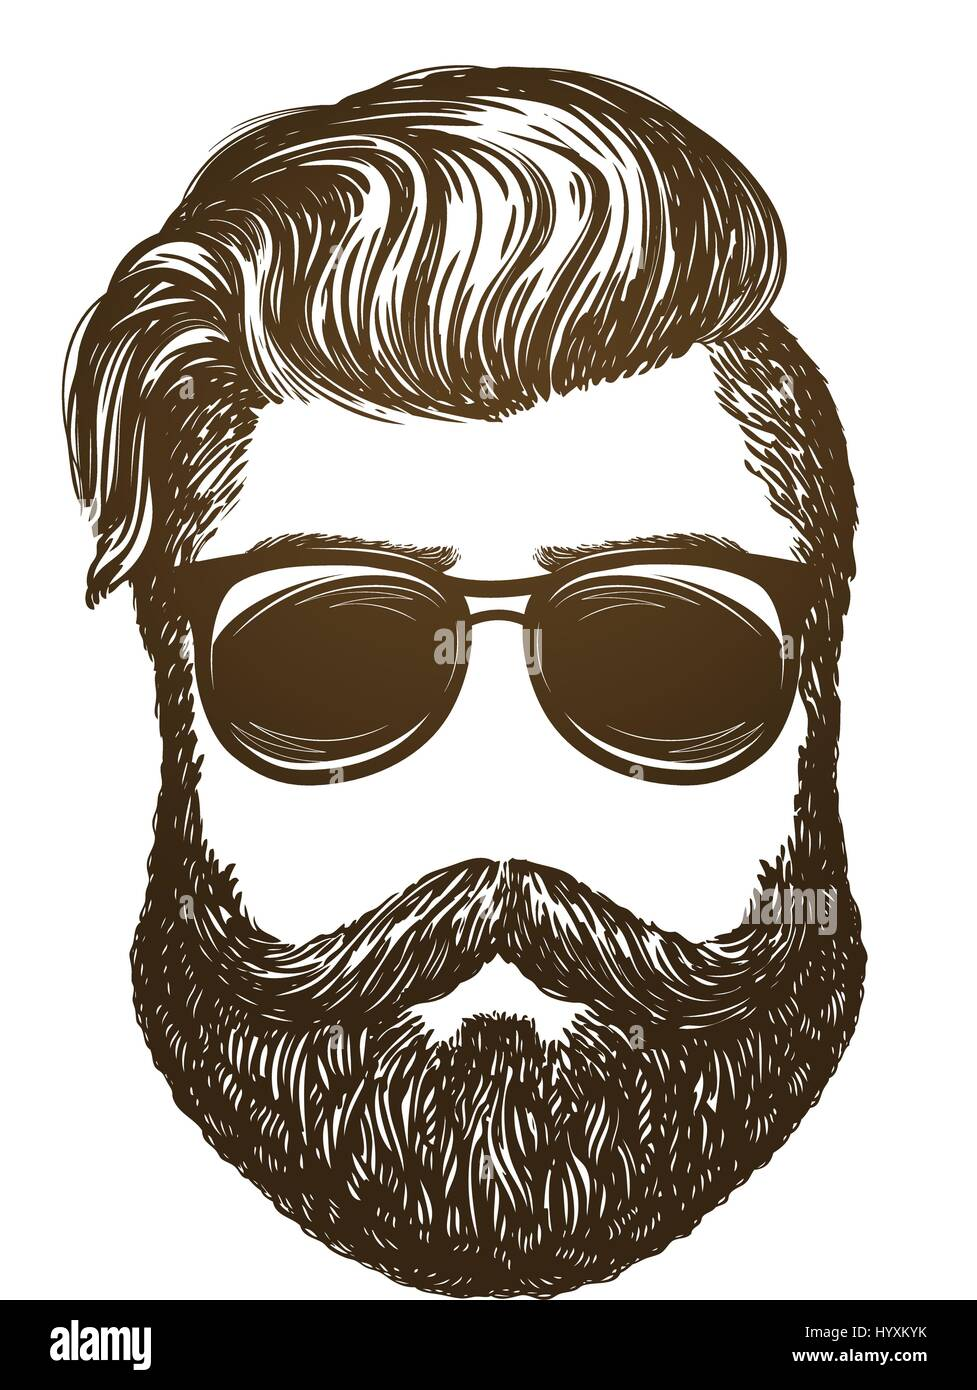 Hand Drawn Portrait Of Man With Beard Hipster Sunglasses Sketch